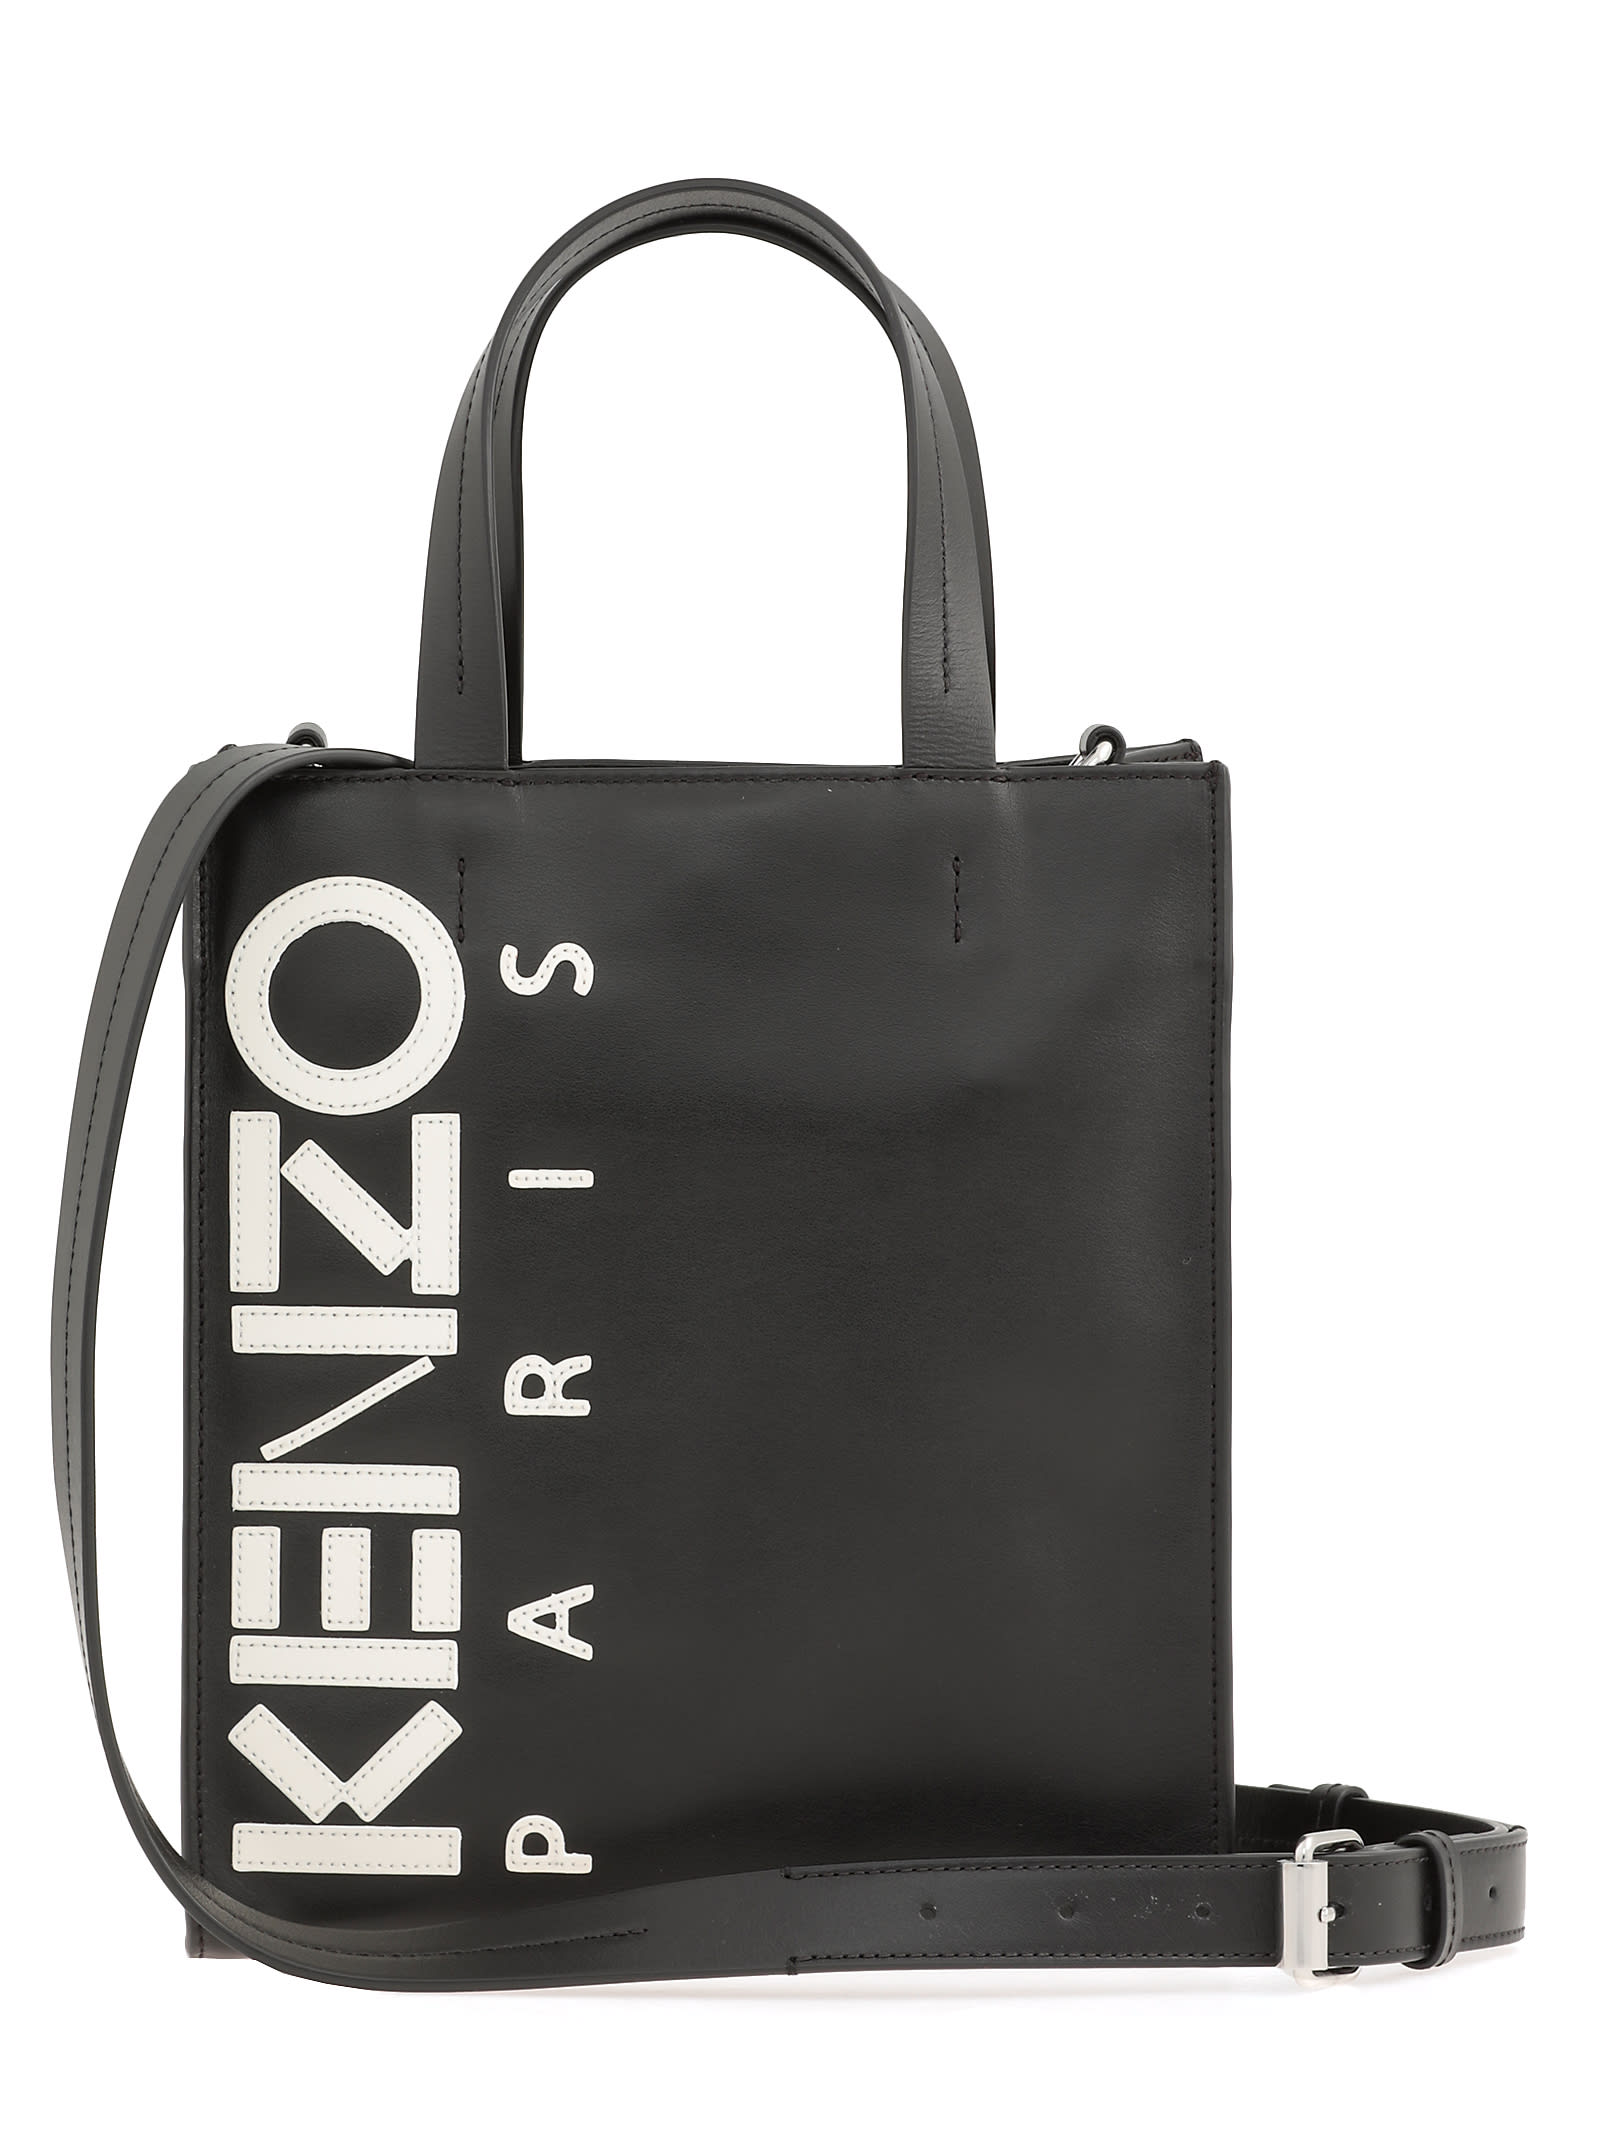 52051f5f05 Kenzo Leather Bag